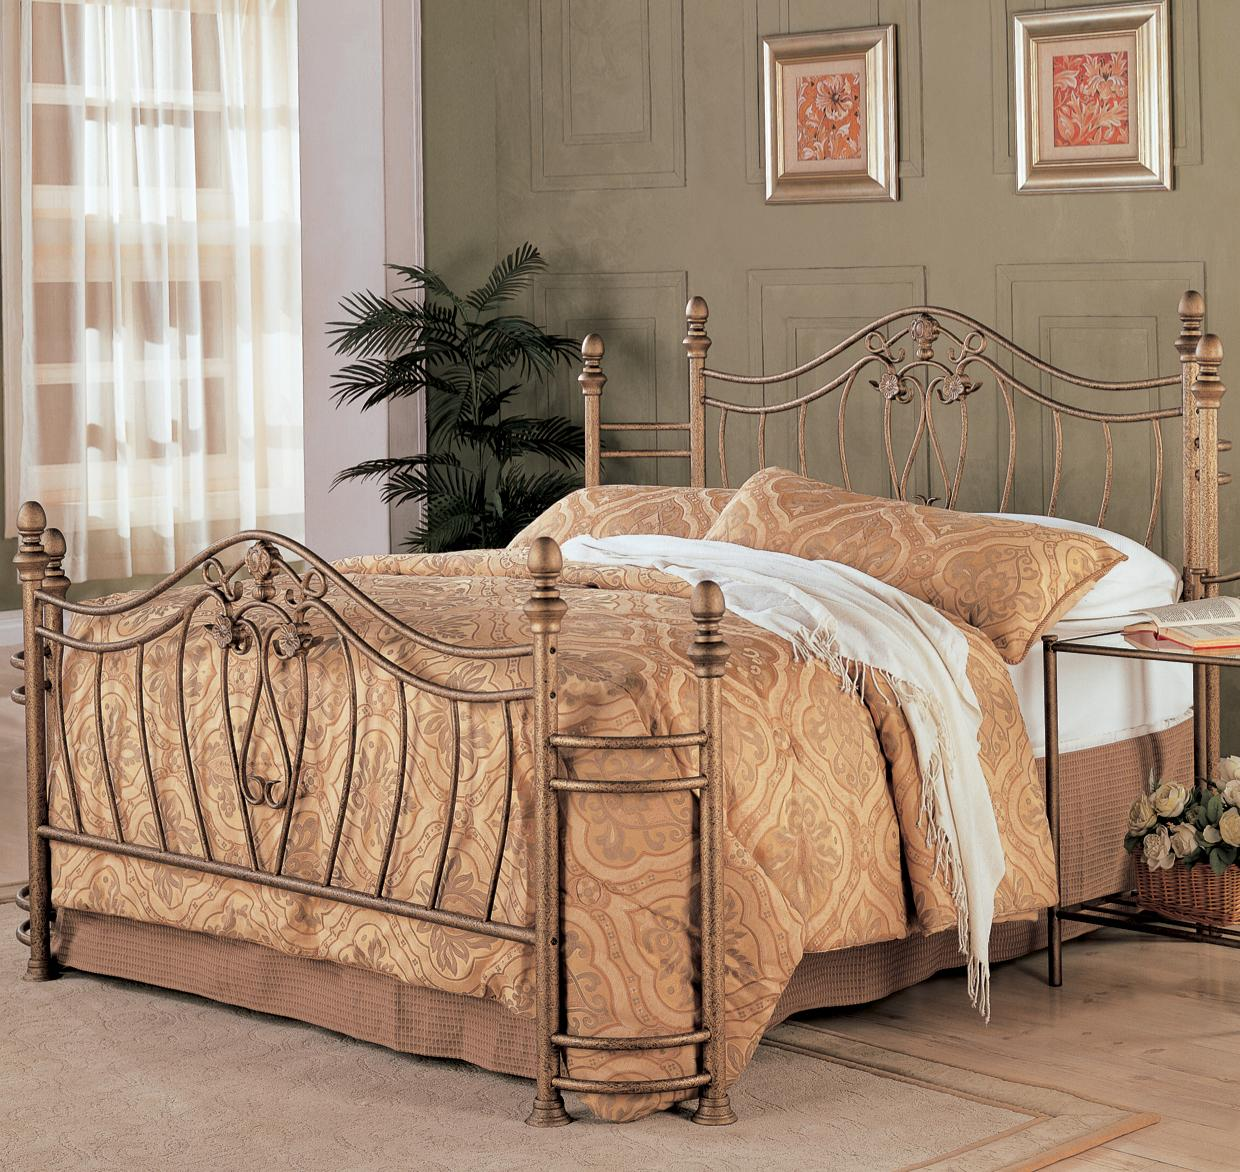 Coaster Sydney Queen Iron Bed Value City Furniture Panel Beds